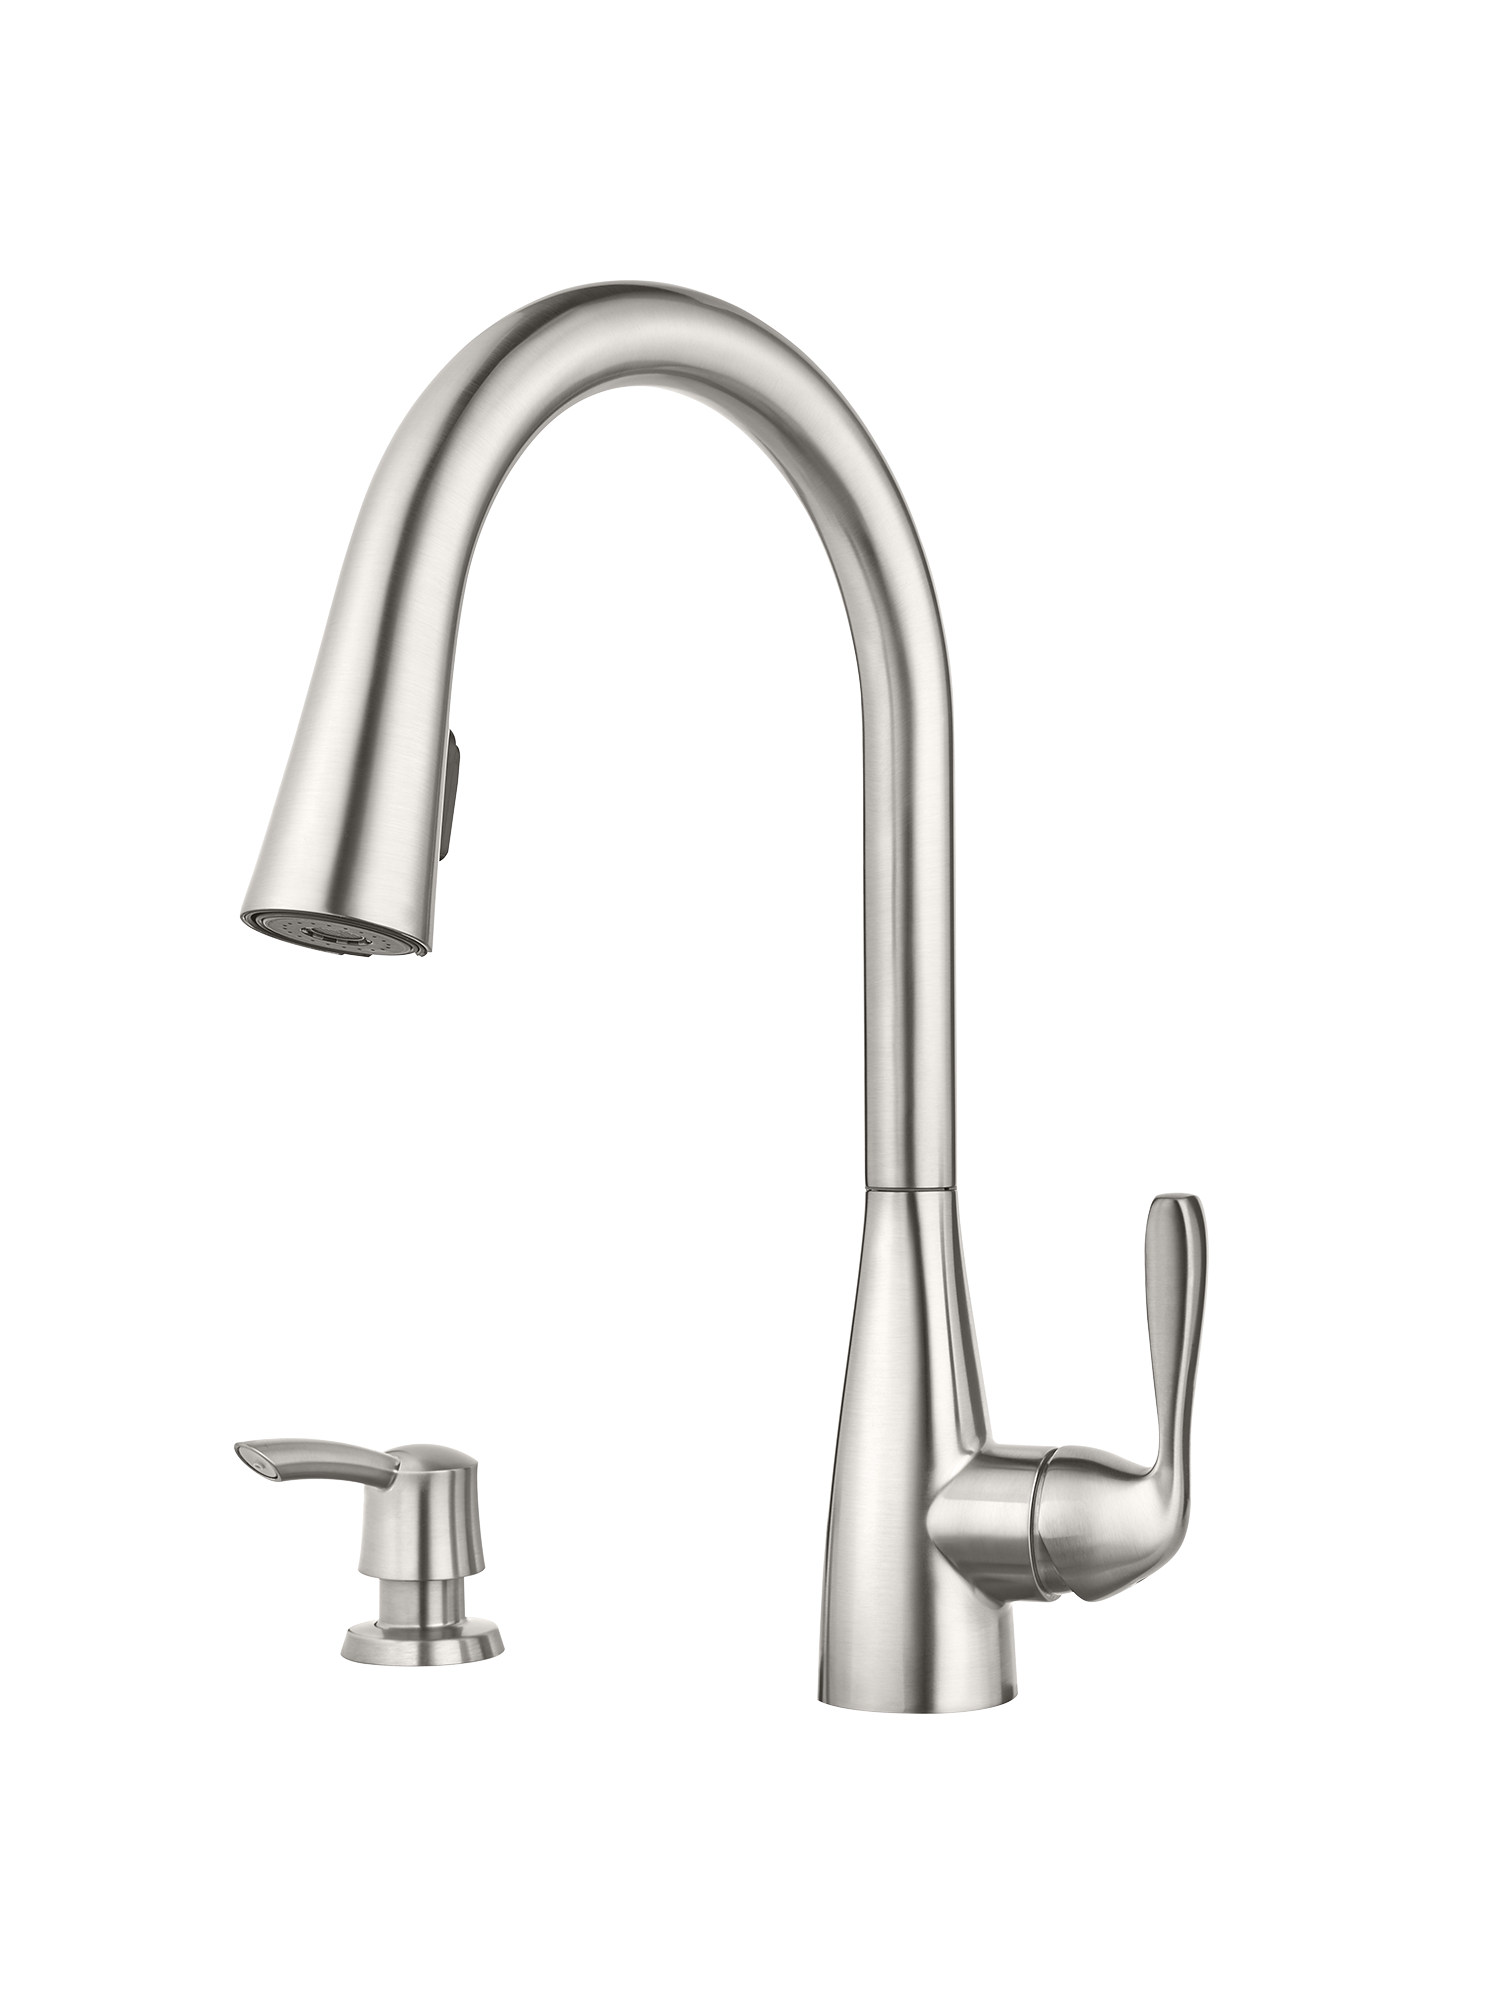 Lima Pulldown Kitchen Faucet | Pfister Faucets Win this and other ...